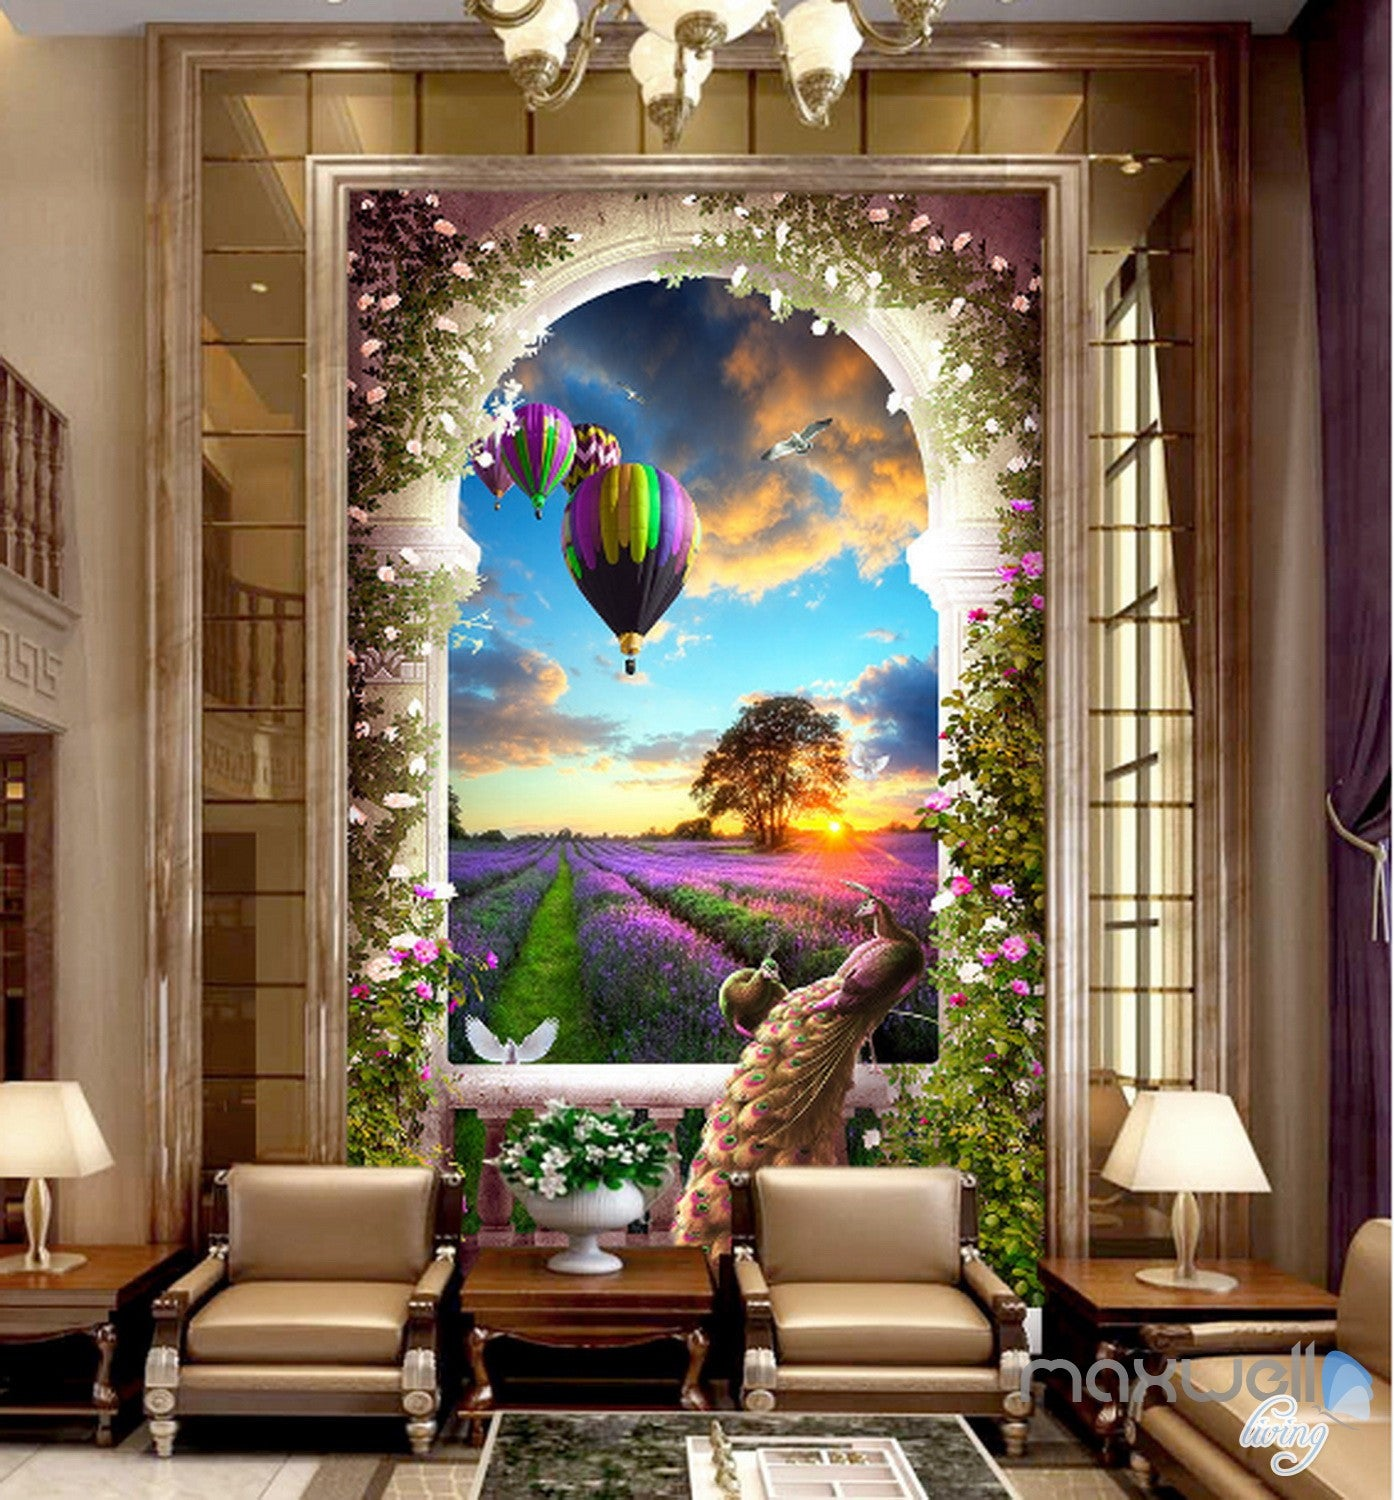 3d balcony peacock hot airbaloon lavender corridor for Digital print wallpaper mural